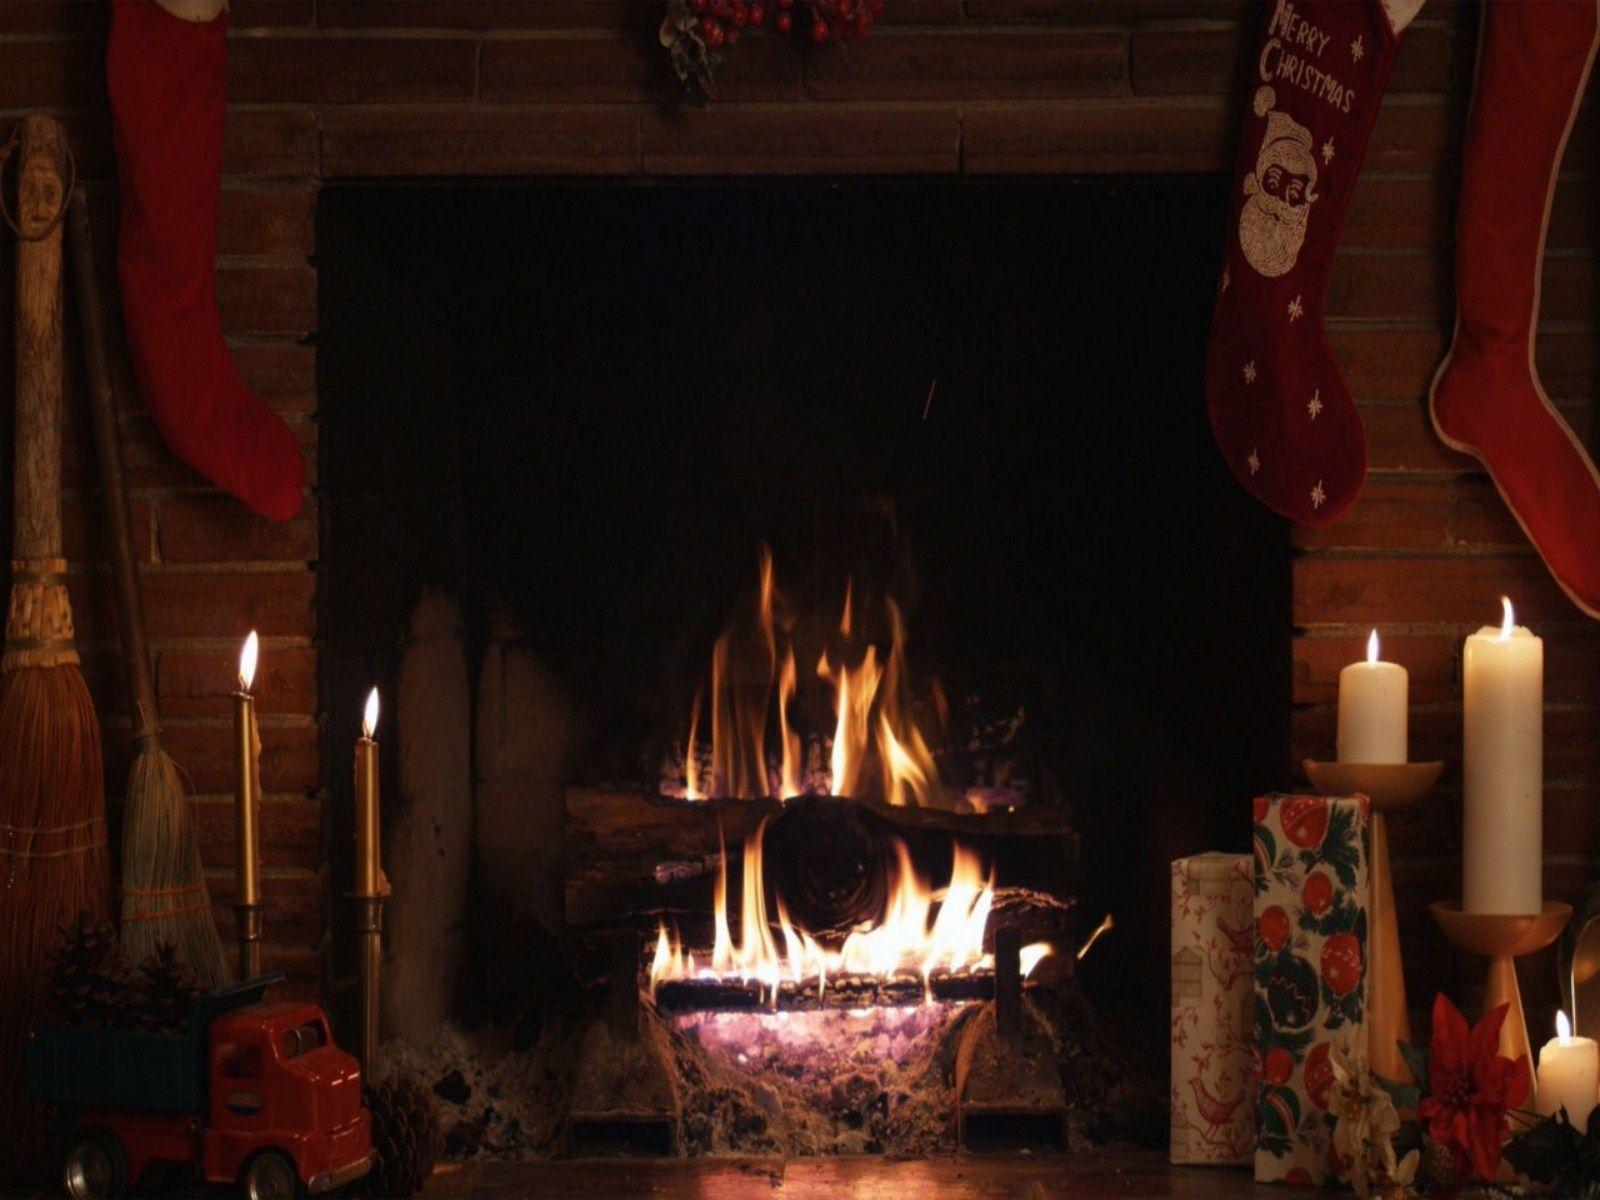 Christmas Fireplace Wallpapers 1600x1200